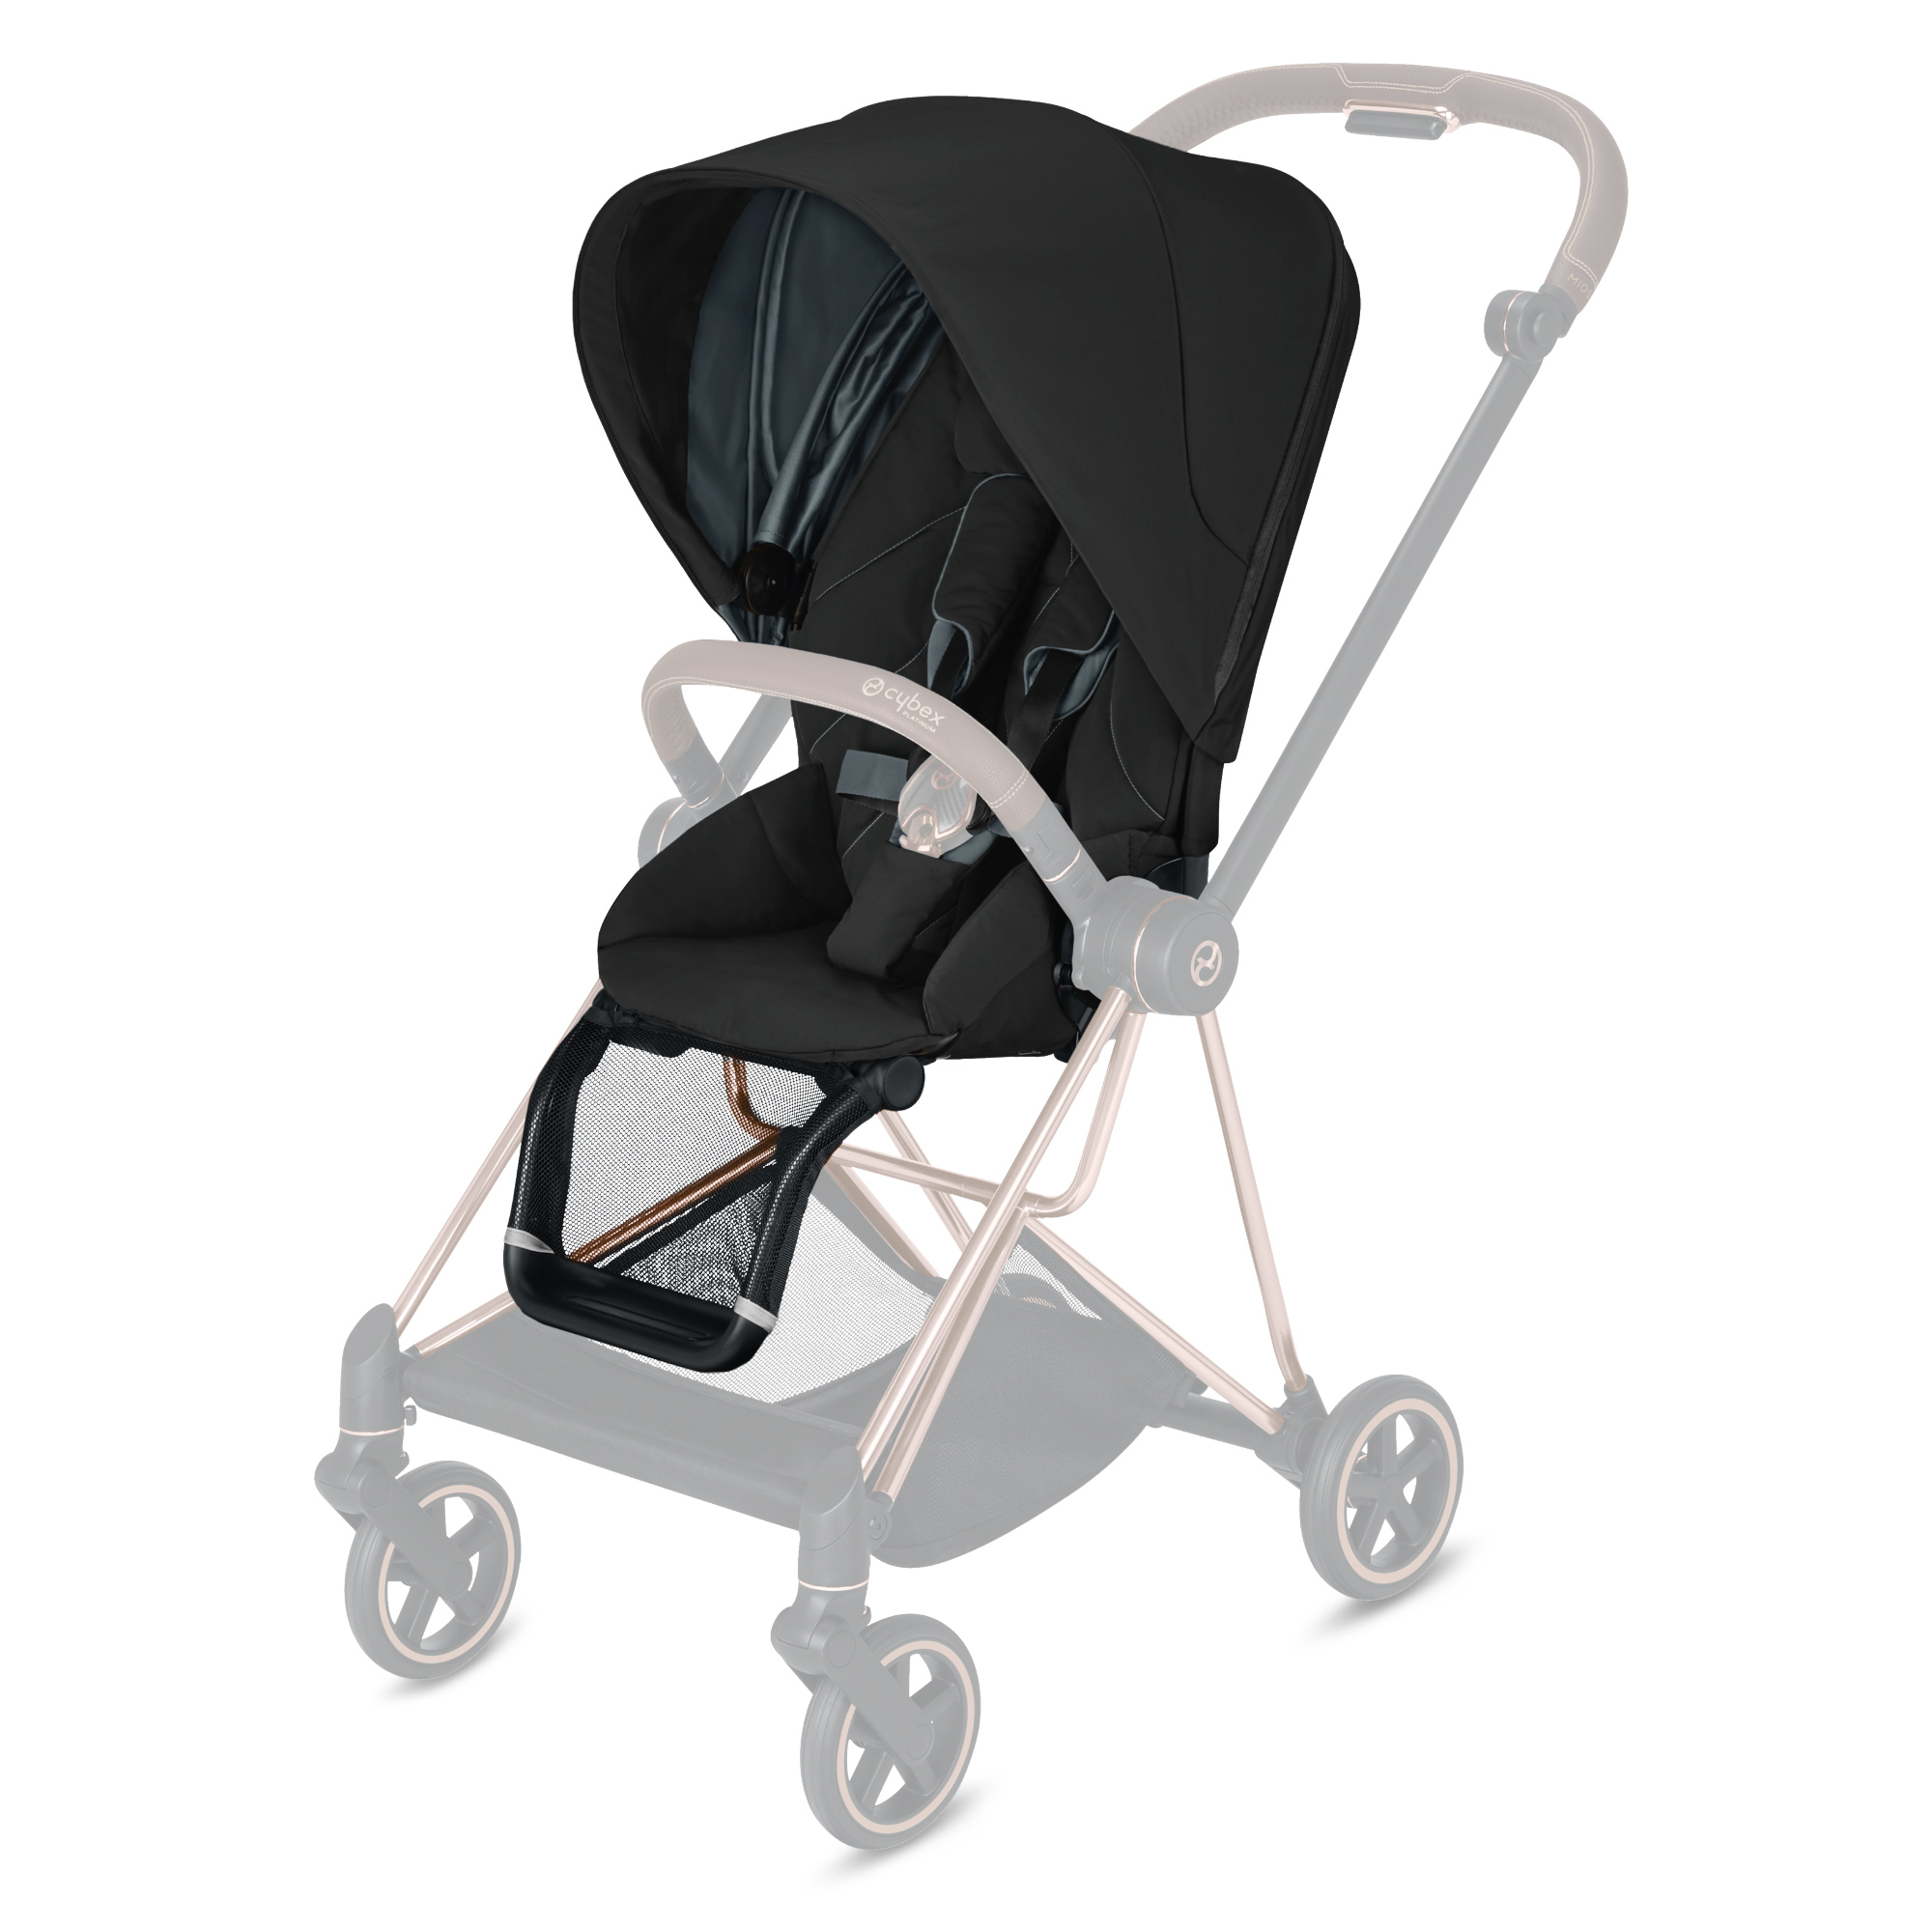 MIOS-cybex-silla-Deep-Black carritos de bebé - Carritos de bebé